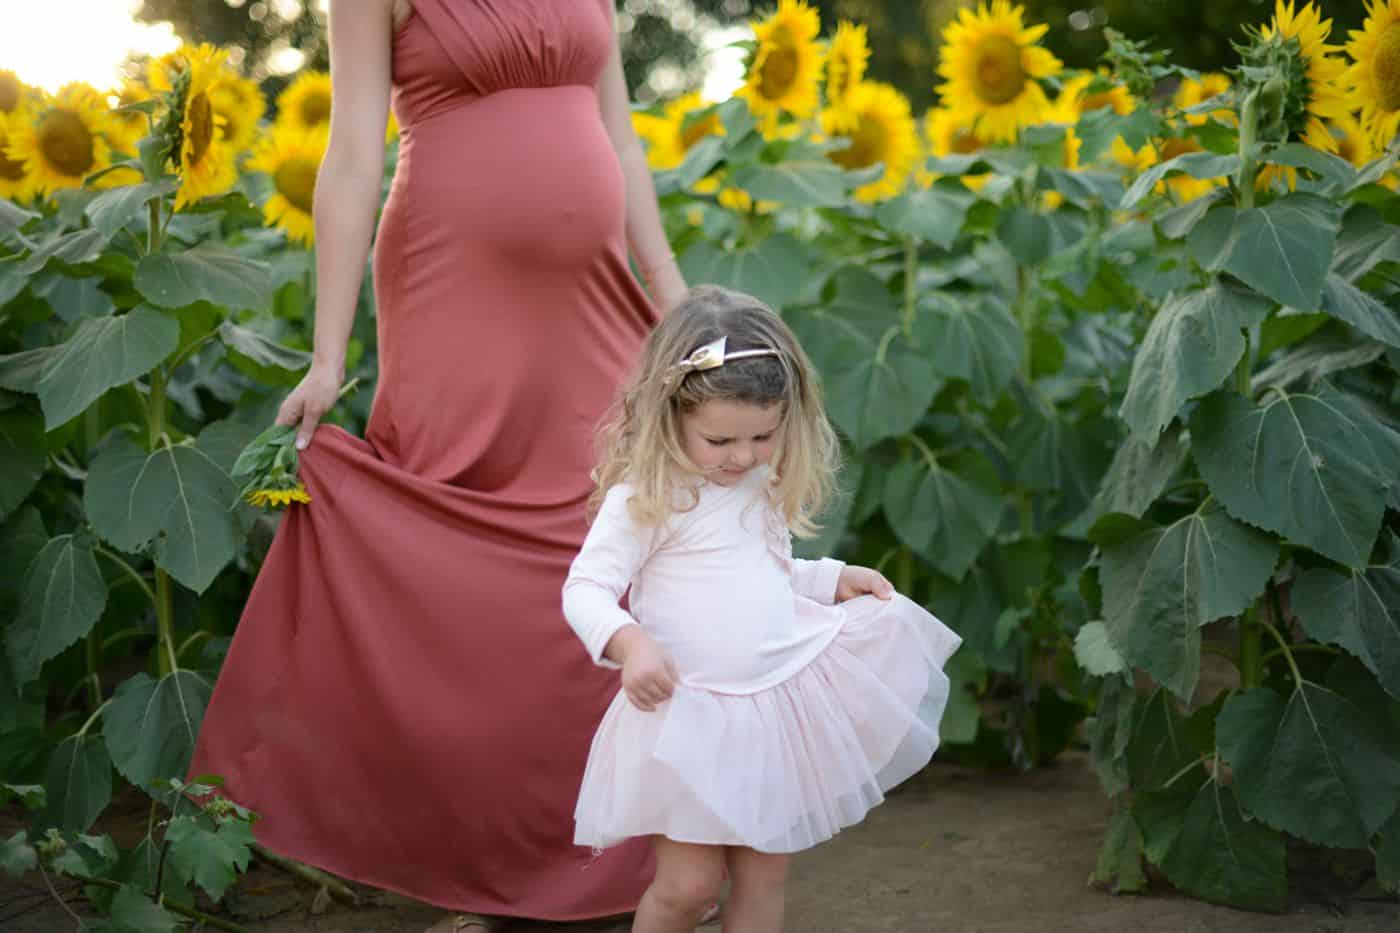 Andrea Nigh's maternity poses include an UNposing technique that allows for more natural images, like this photo of a pregnant mom and daughter dancing in a sunflower field.